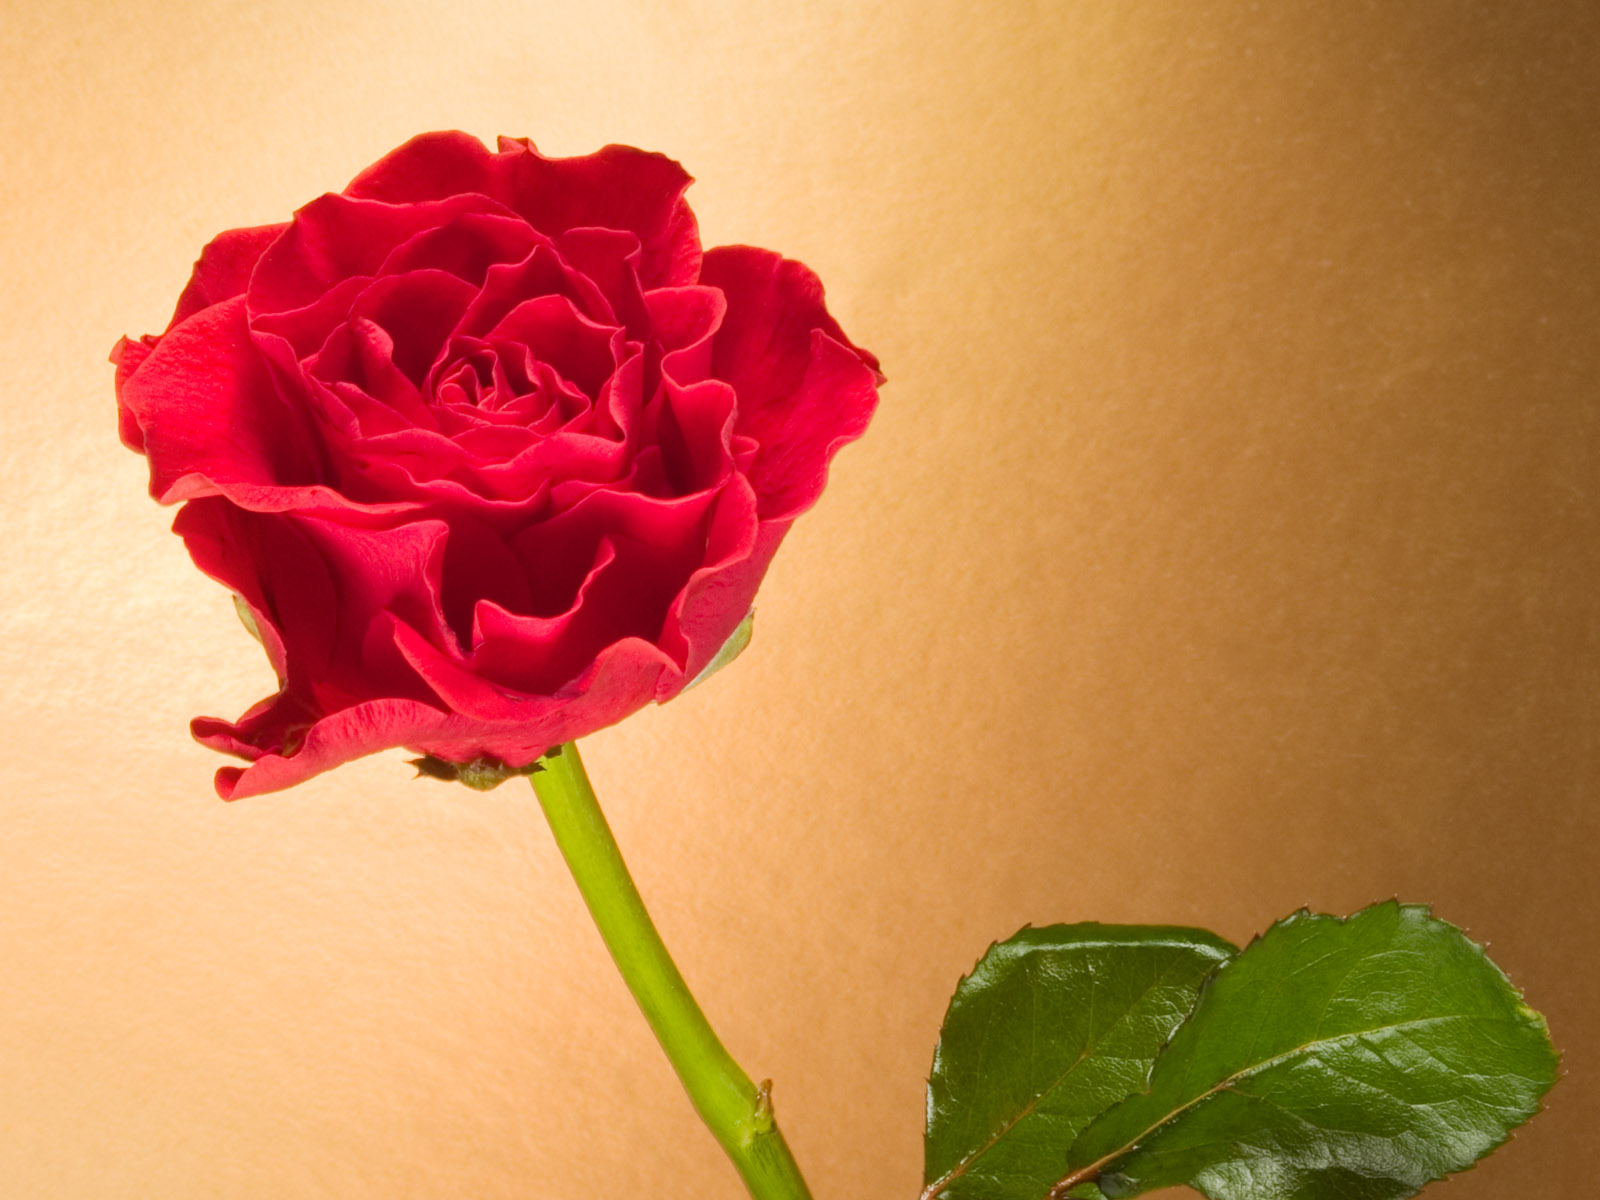 rose wallpapers best - photo #21